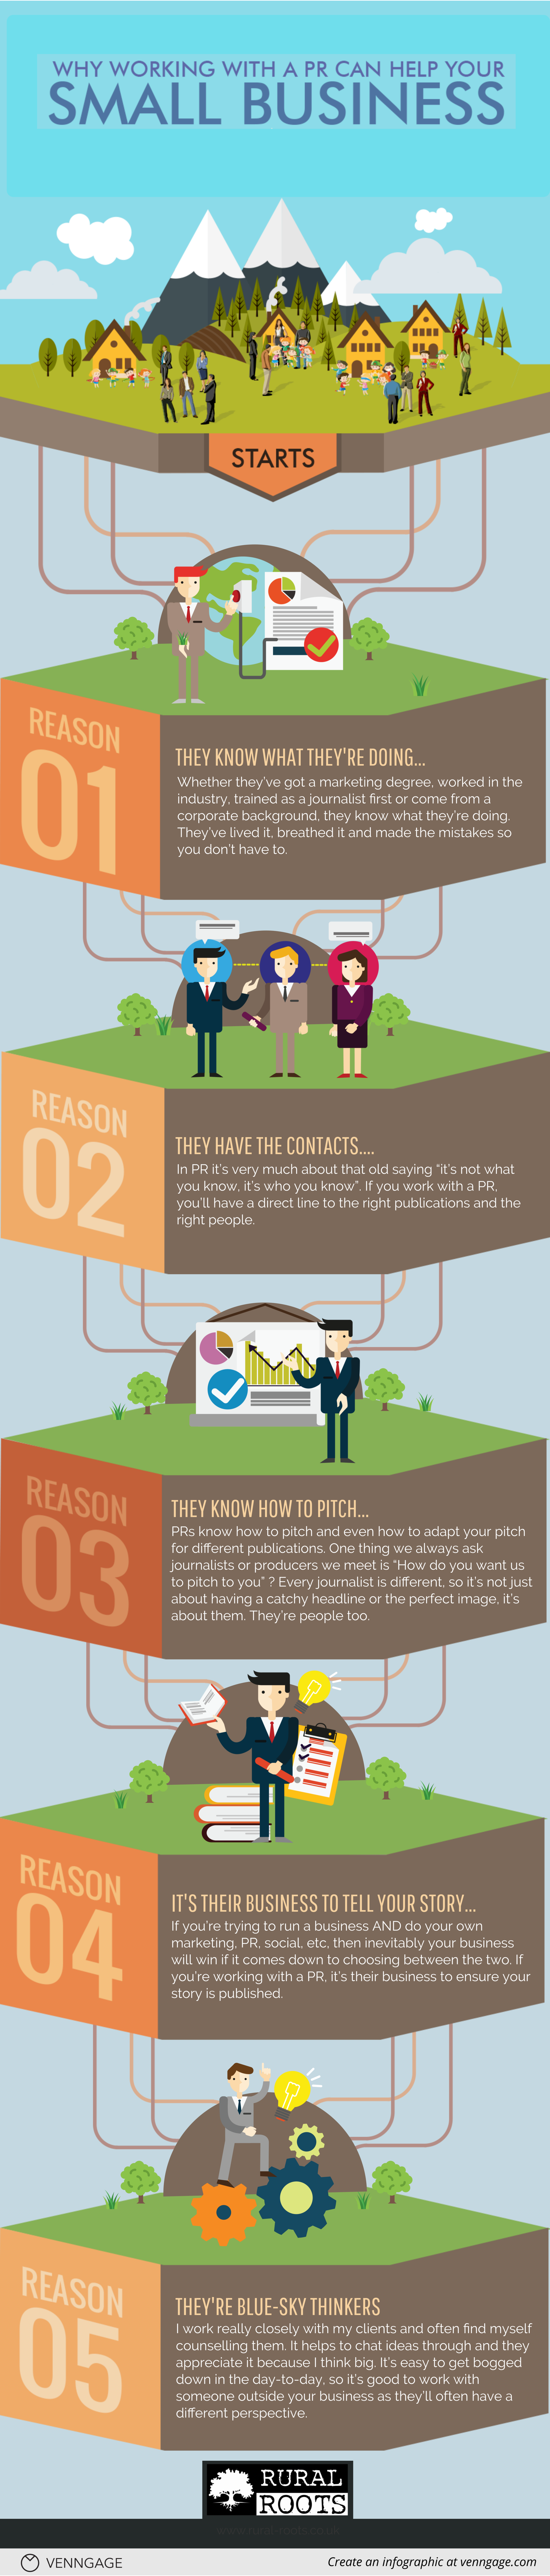 Why-working-with-a-PR-Infographic-Venngage-HD.png